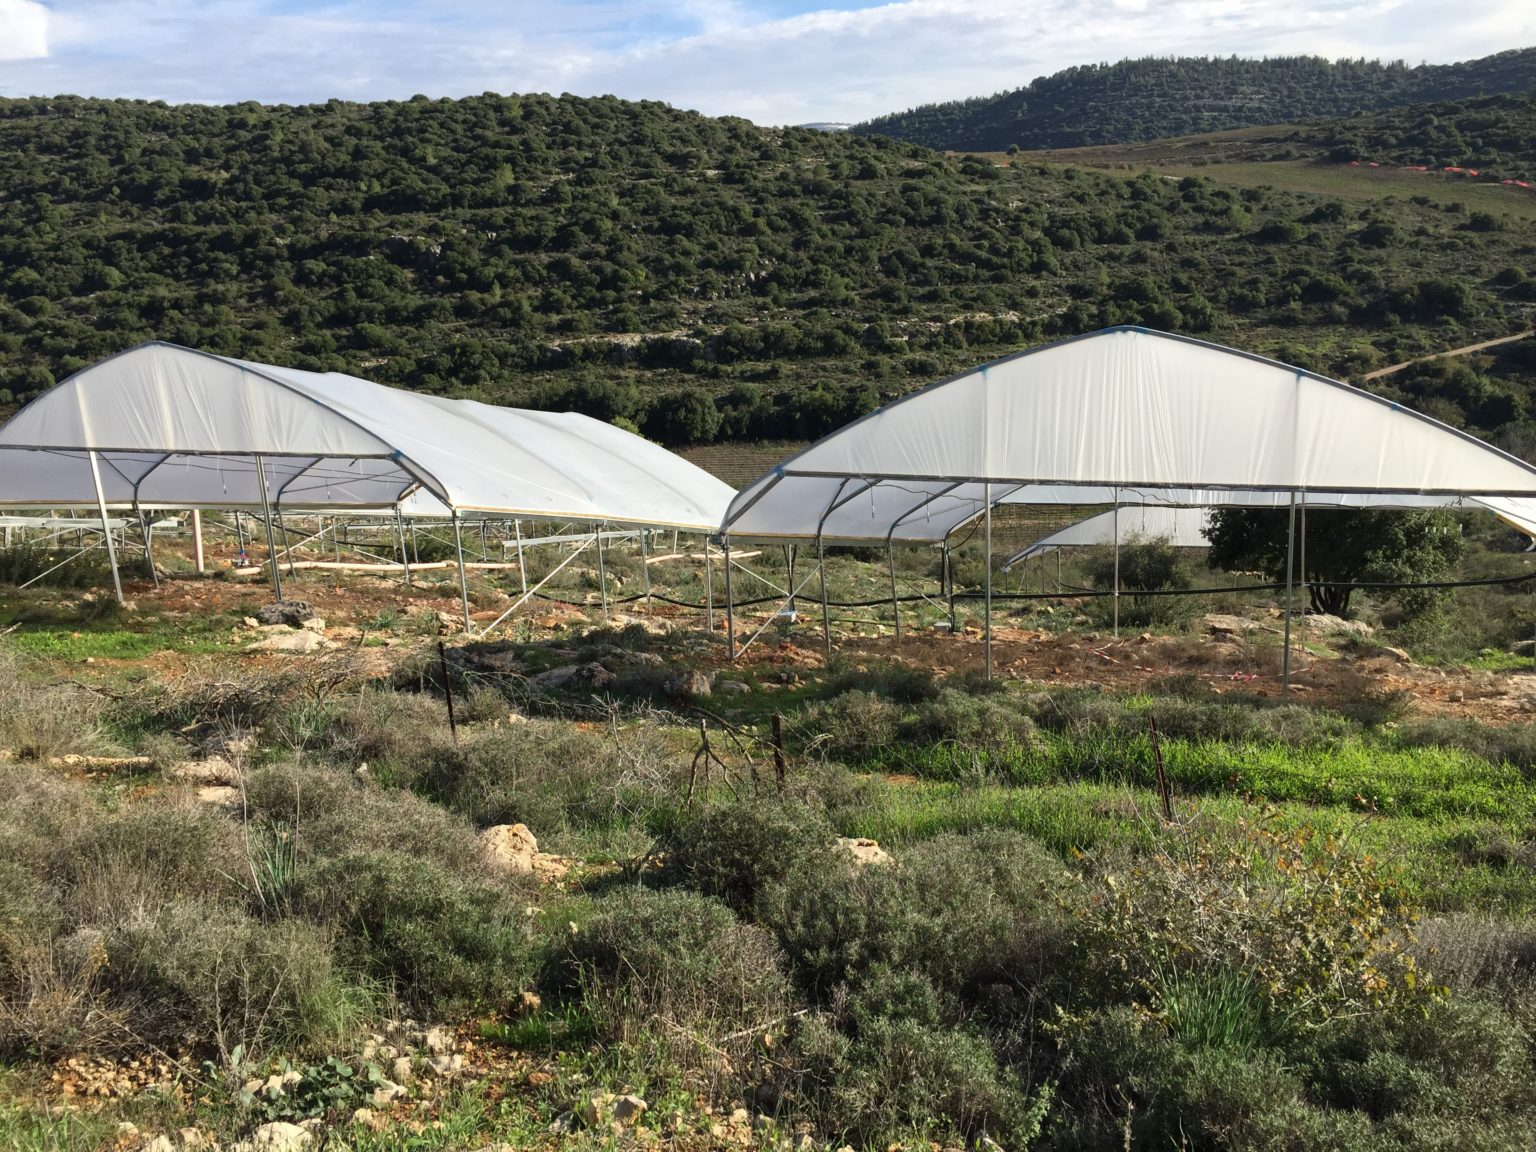 Plastic covering excludes rain from plots of desert shrubs.